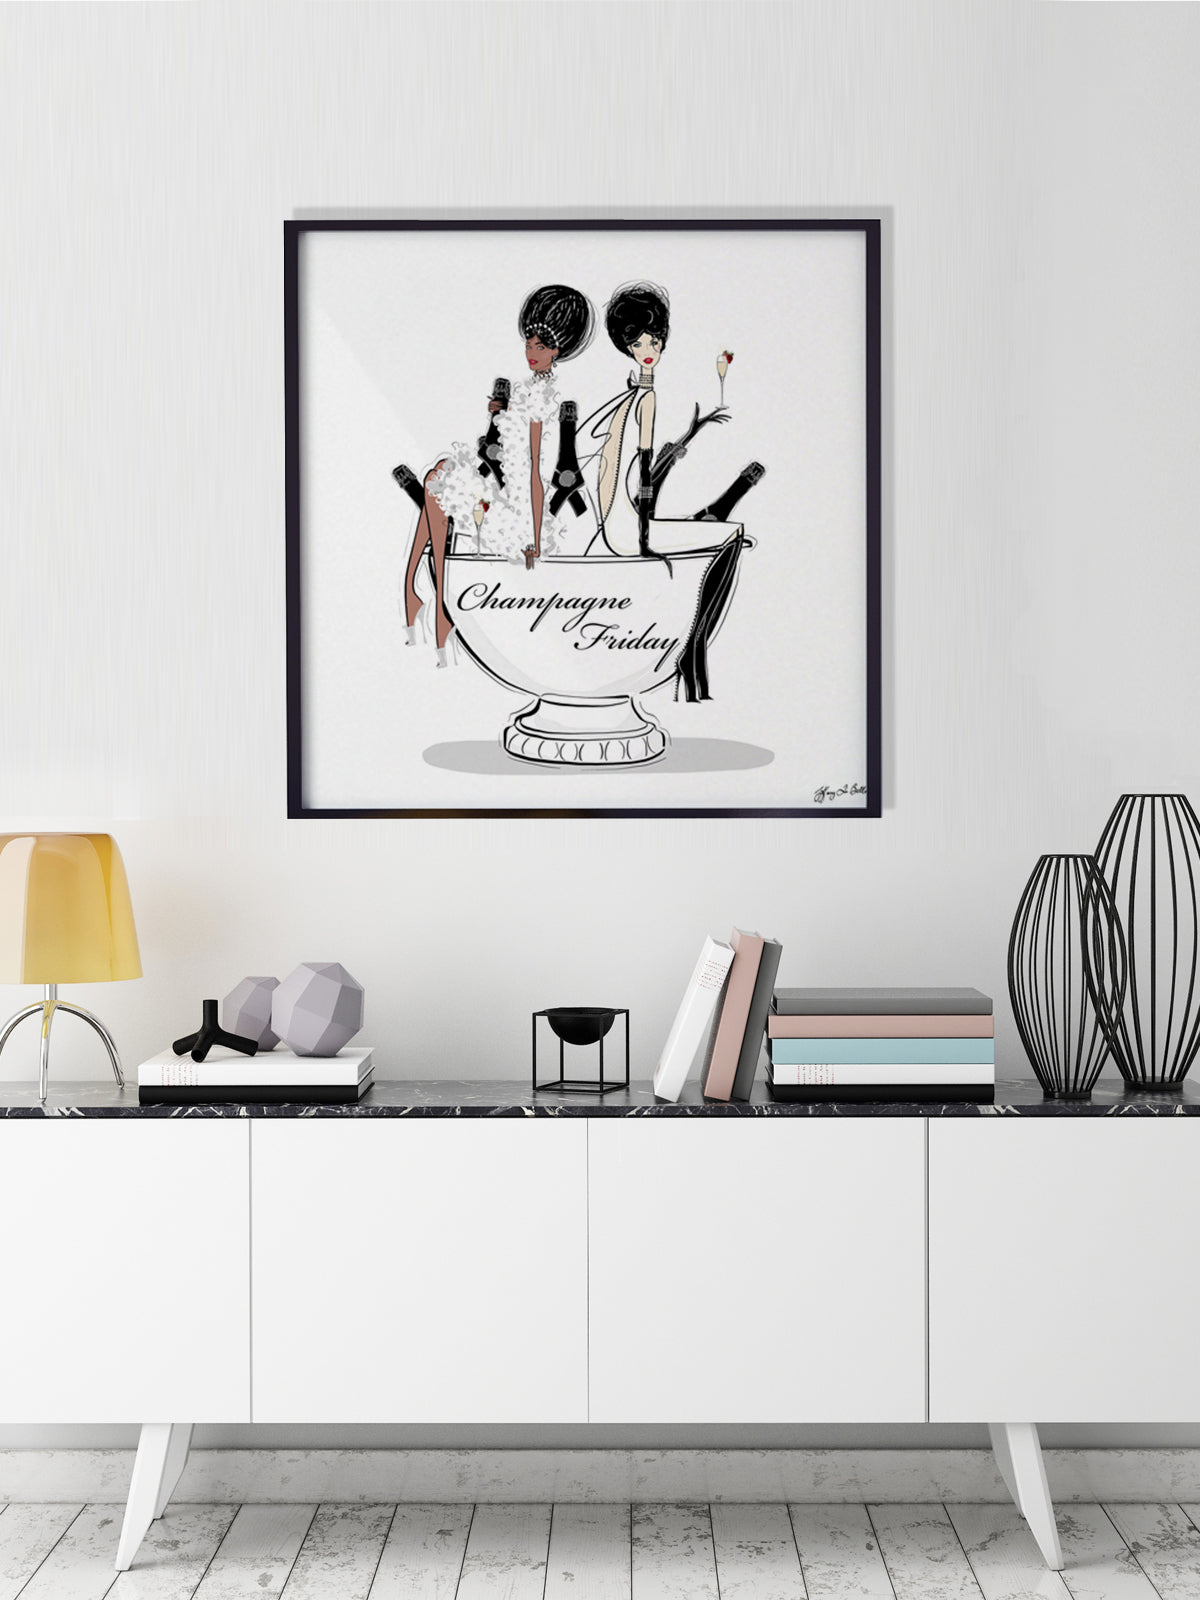 Champagne Friday - Illustration - Limited Edition Print - Tiffany La Belle